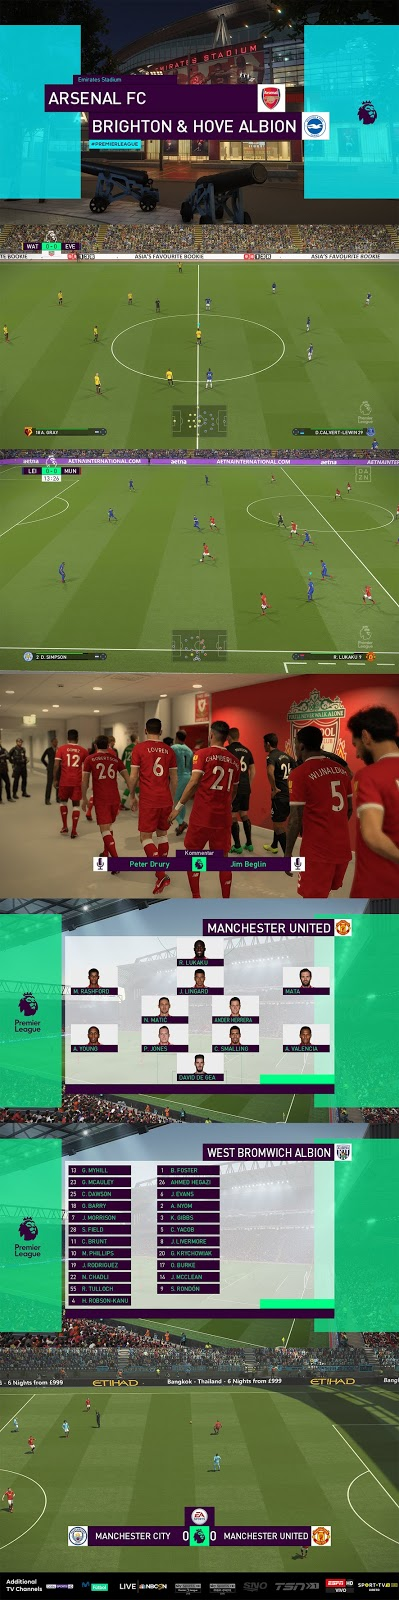 PES 2018 Premier League Scoreboard Beta v2 by Cesc